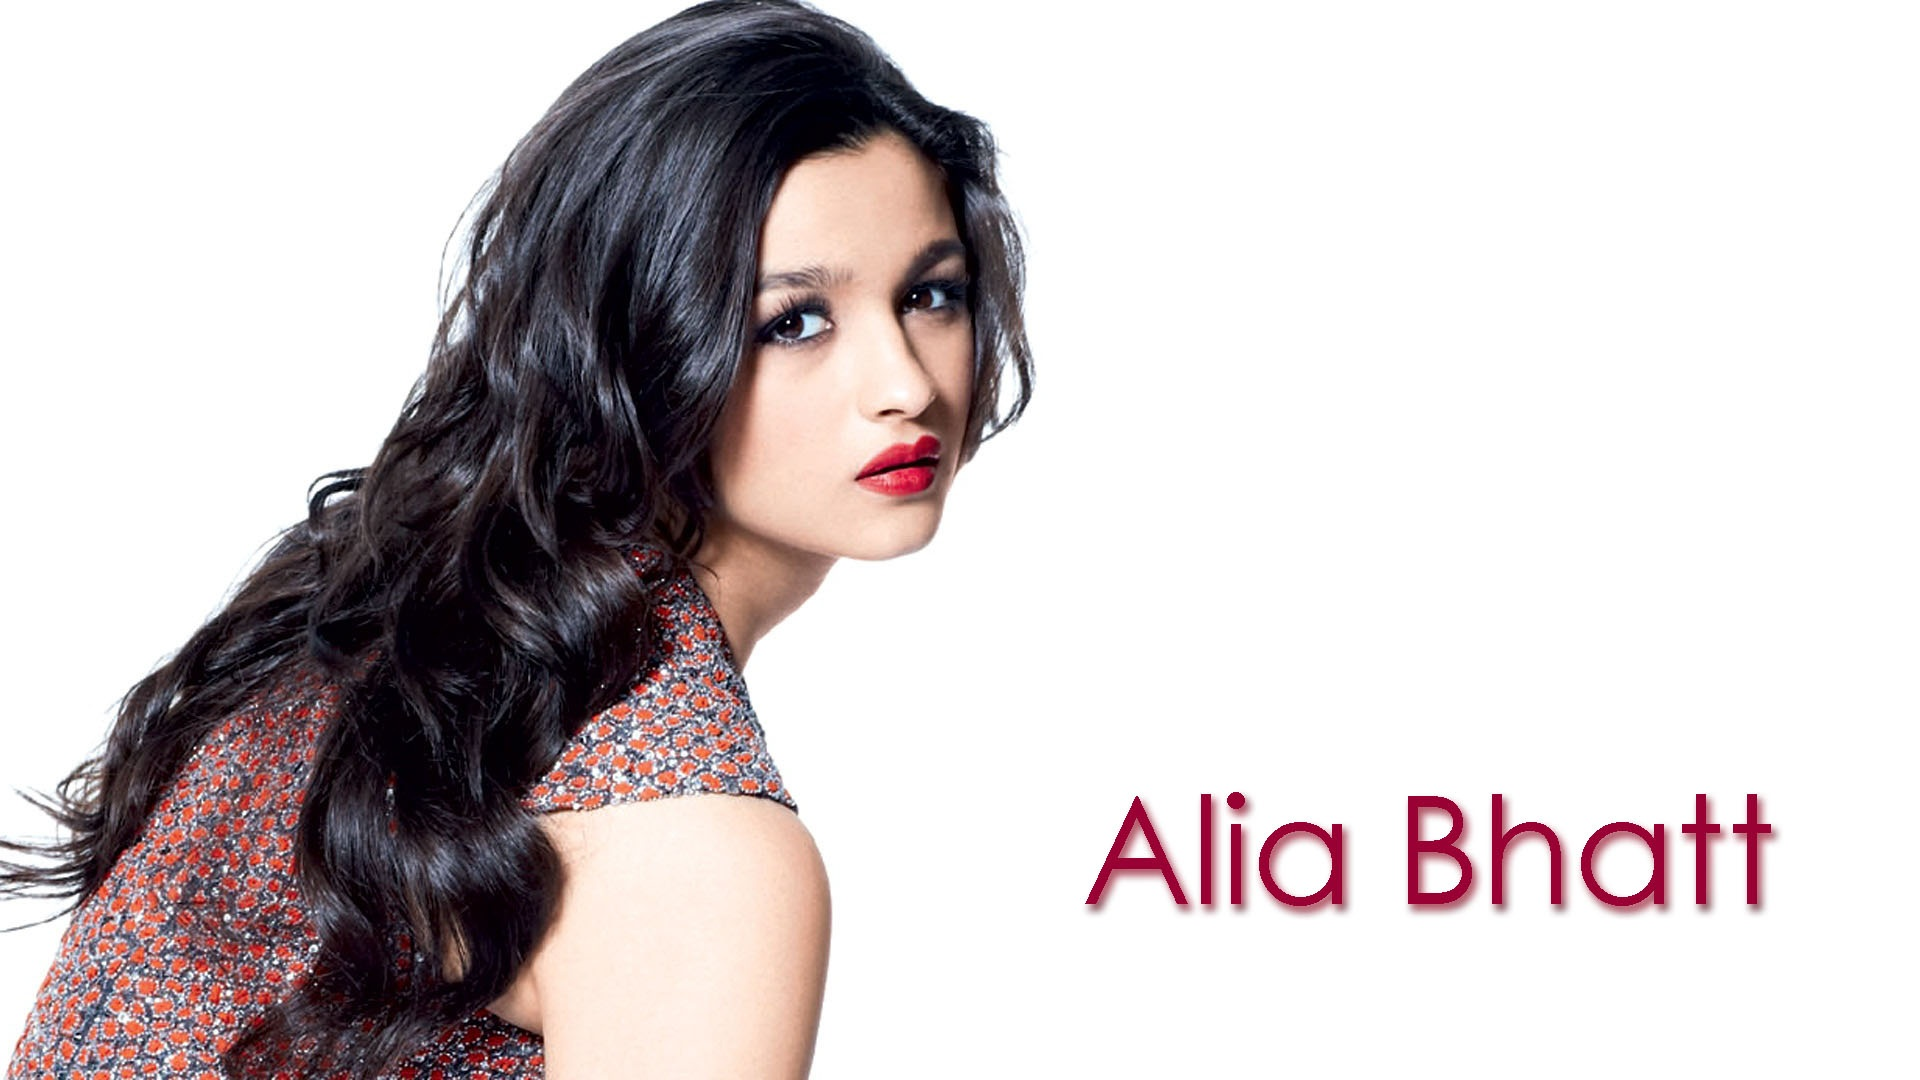 alia bhatt hd wallpaper | hd latest wallpapers